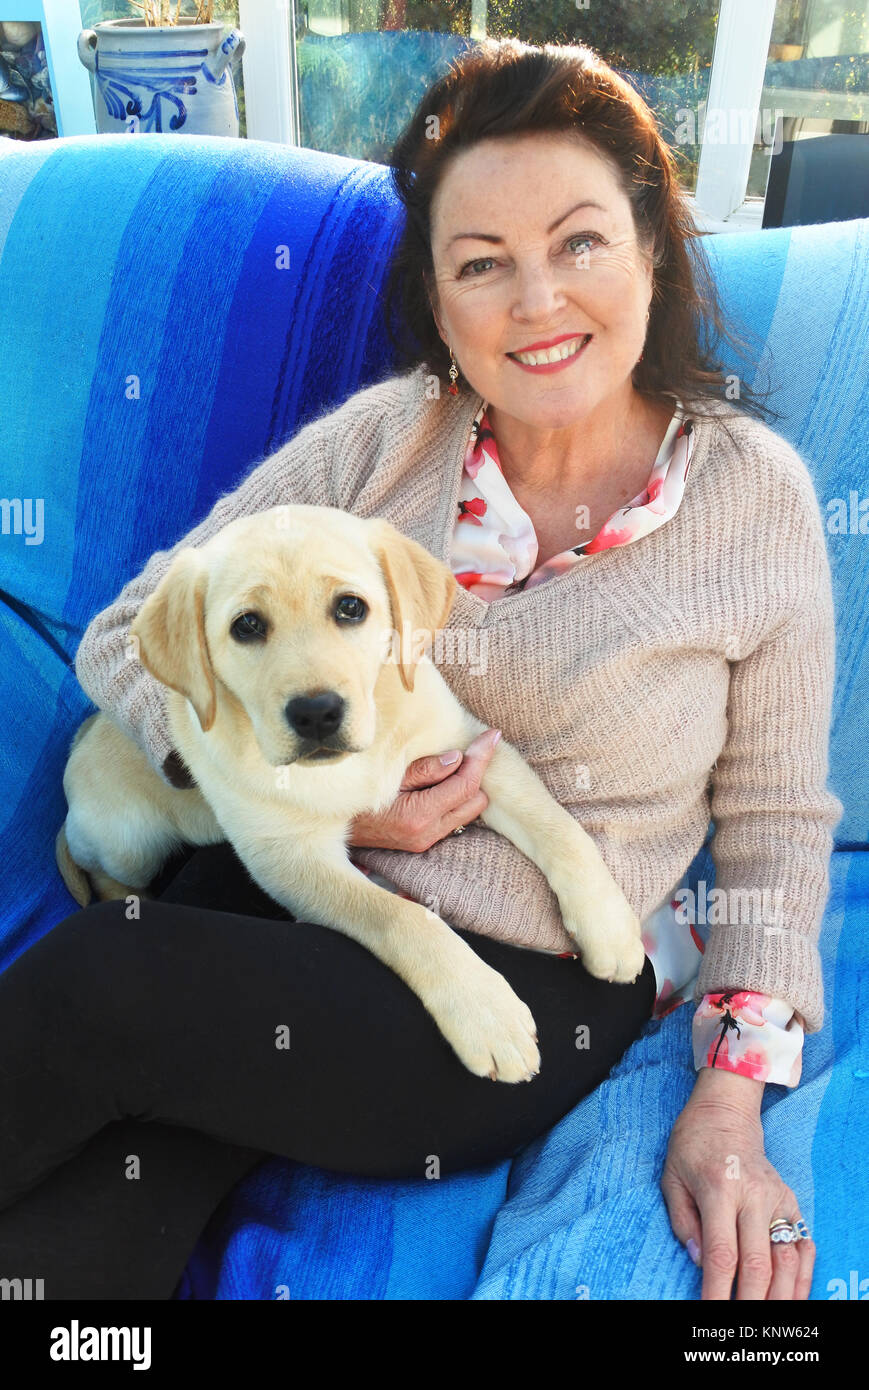 Mature Female Cuddling A Young Labrador Puppy On Her Lap John